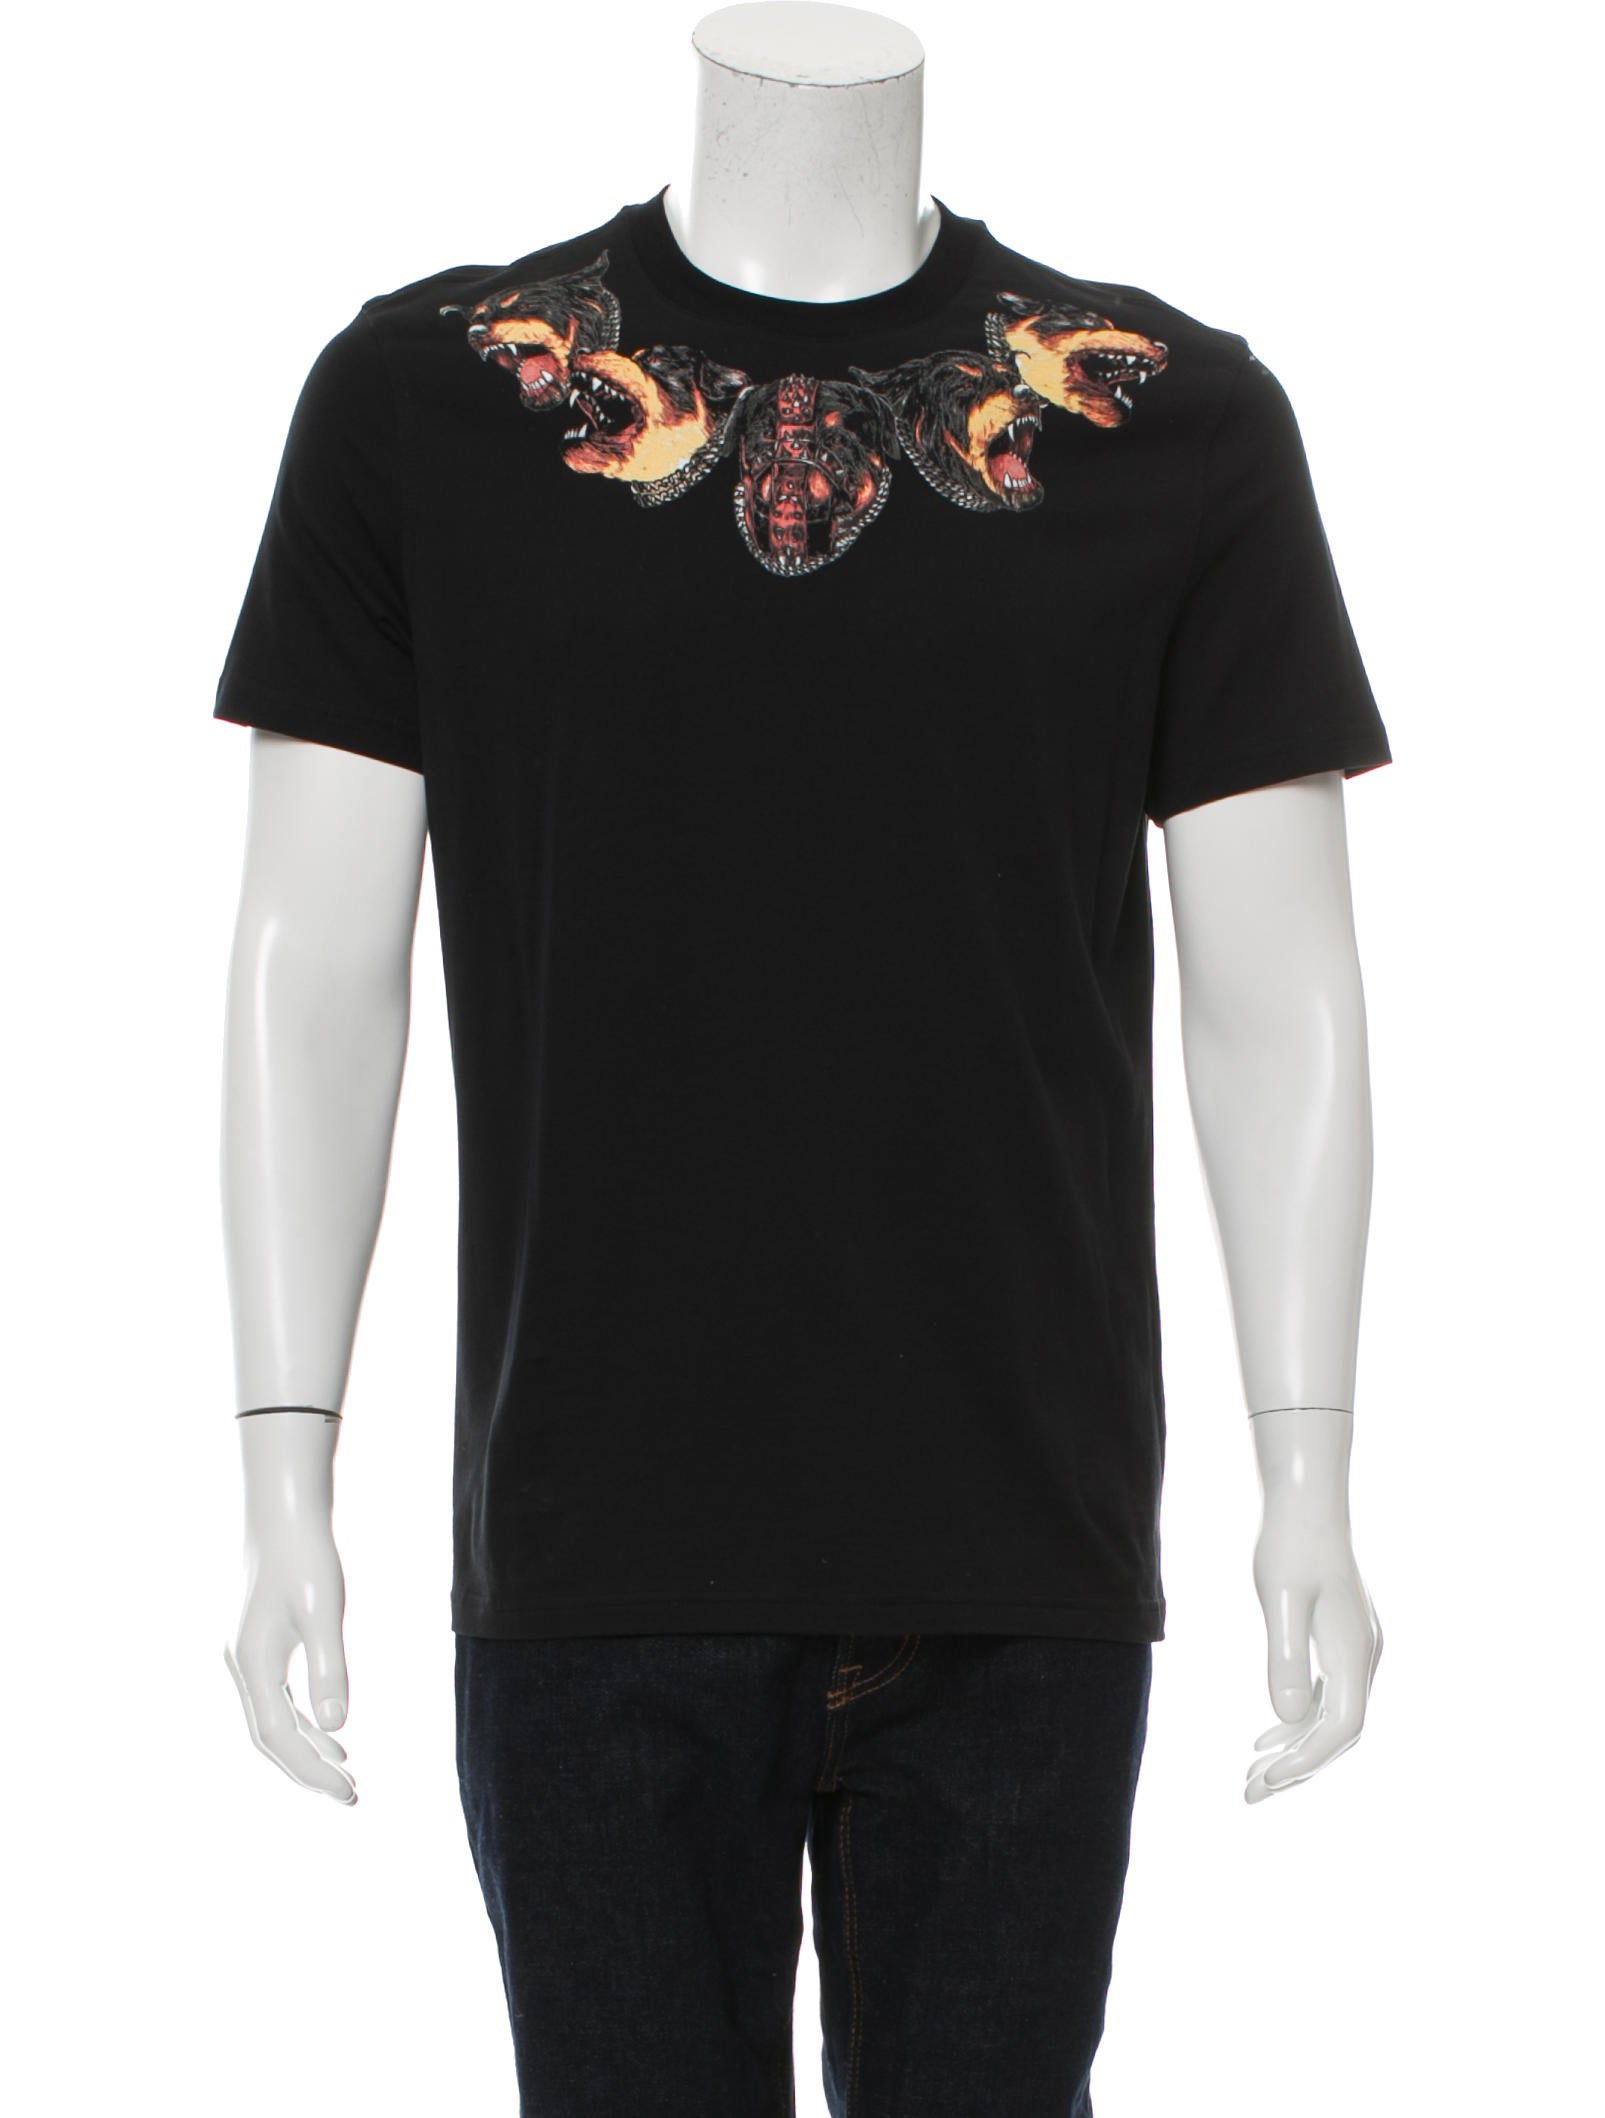 Givenchy rottweiler graphic t shirt clothing giv40687 for Givenchy t shirts for sale